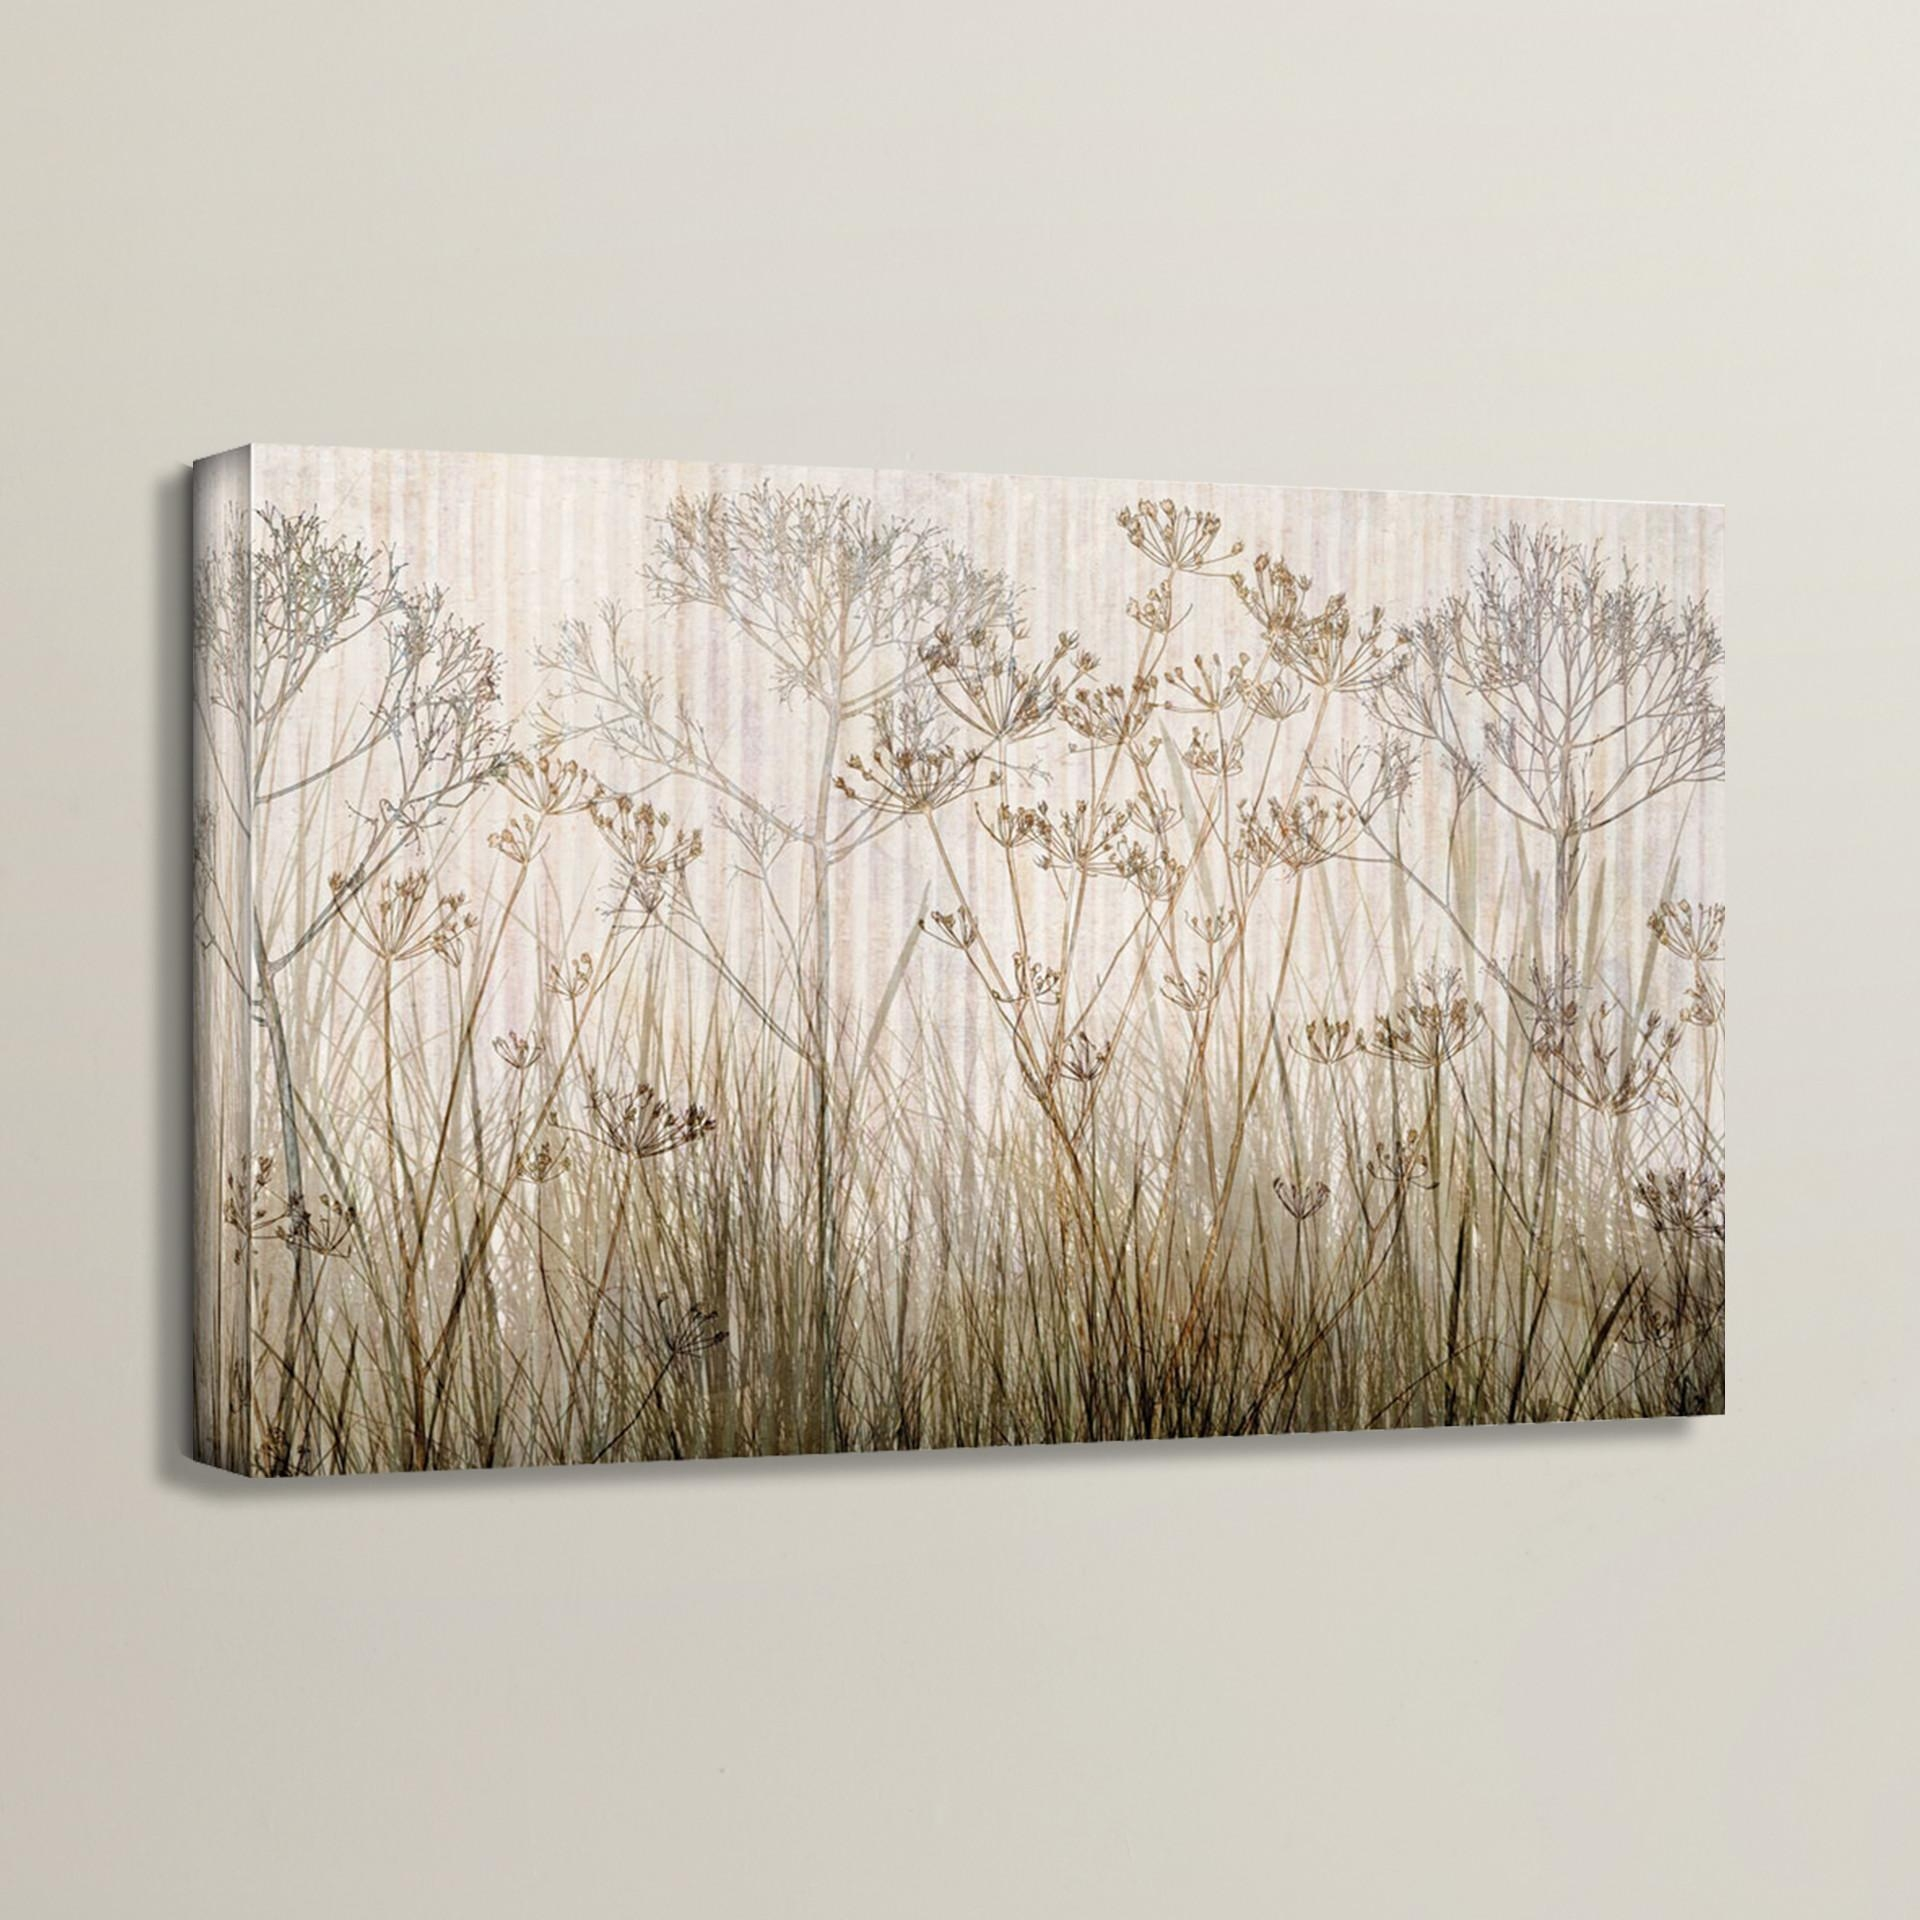 Wall Art Paintings L1318 C215363 O69050Flower 5Bamp 5Dbotanical Within Fetco Home Decor Wall Art (View 13 of 20)